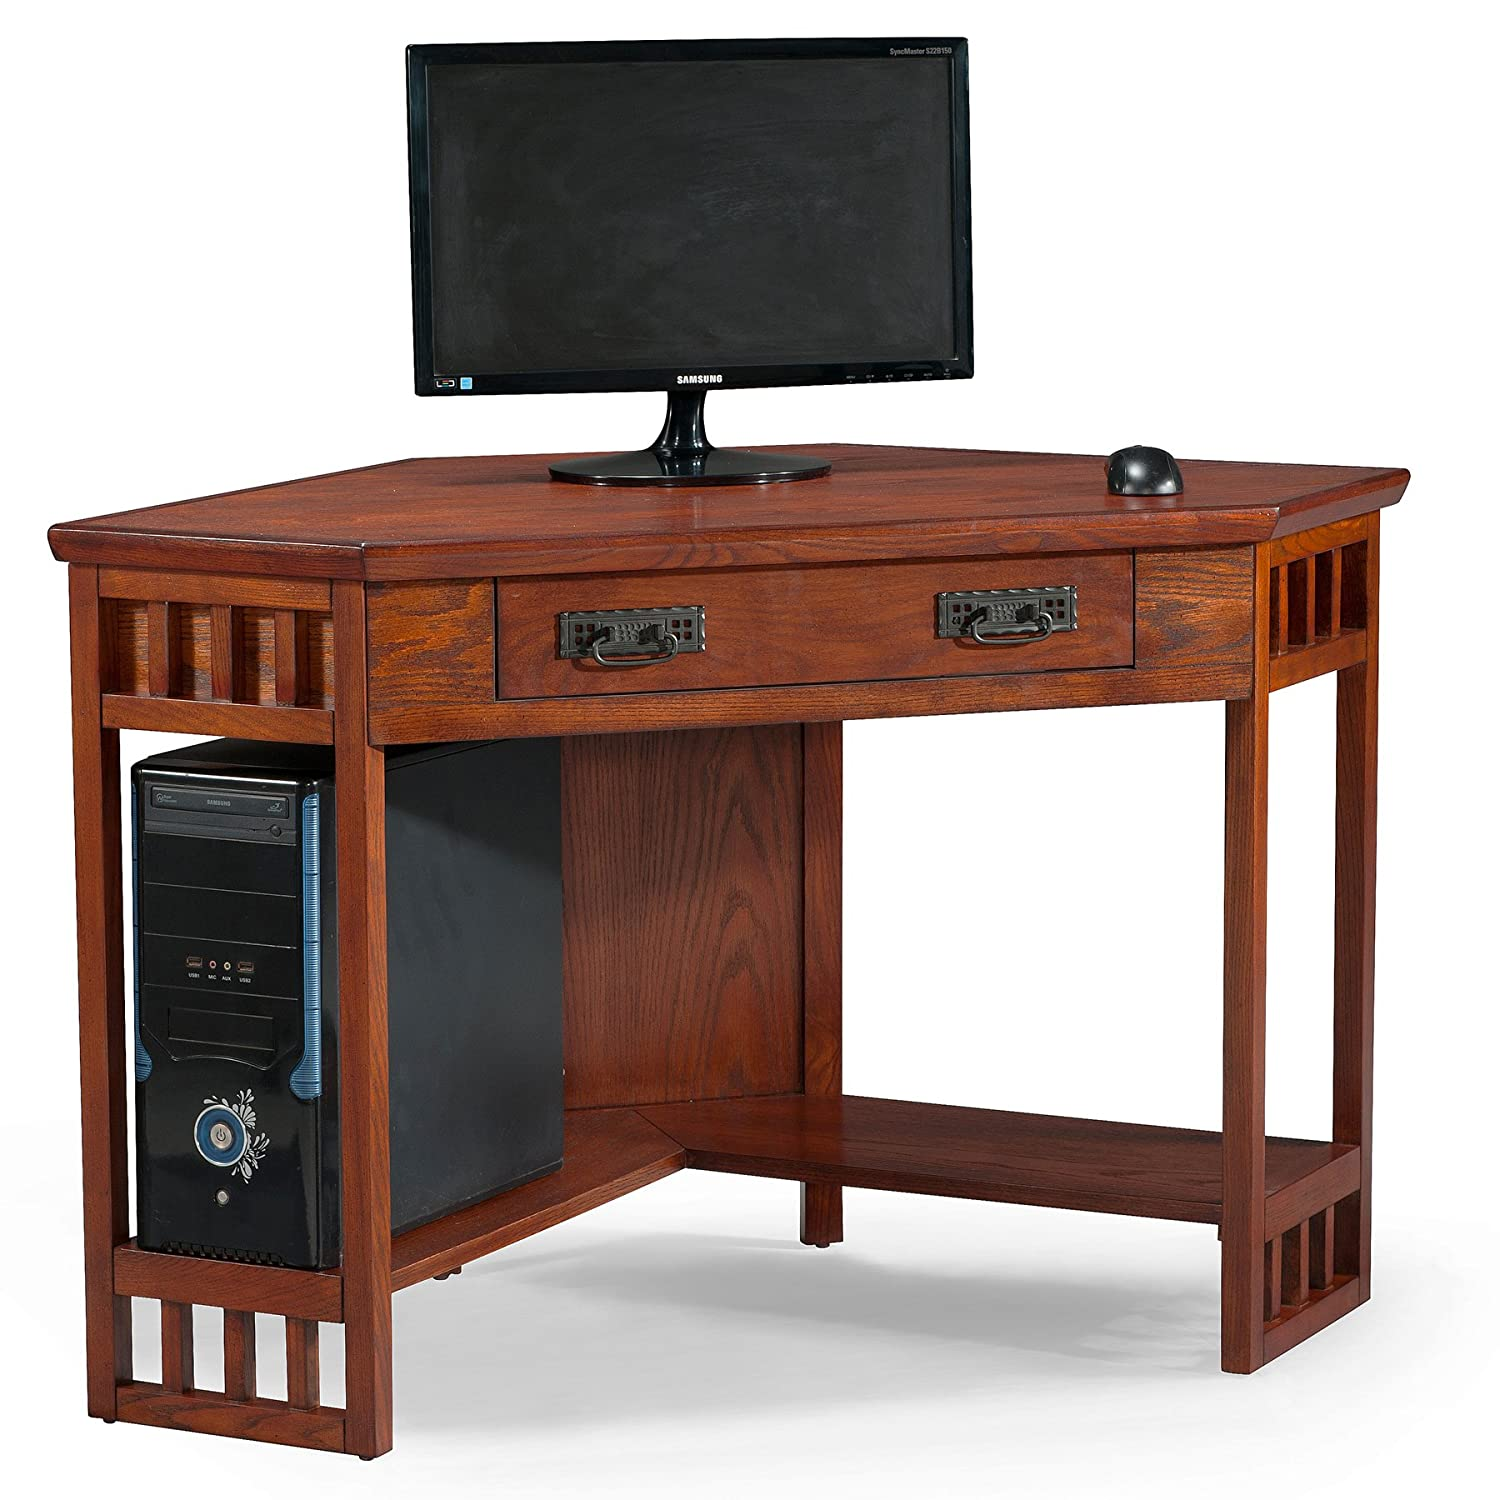 office corner desks. Amazon.com: Leick Corner Computer And Writing Desk, Mission Oak Finish: Kitchen \u0026 Dining Office Desks U